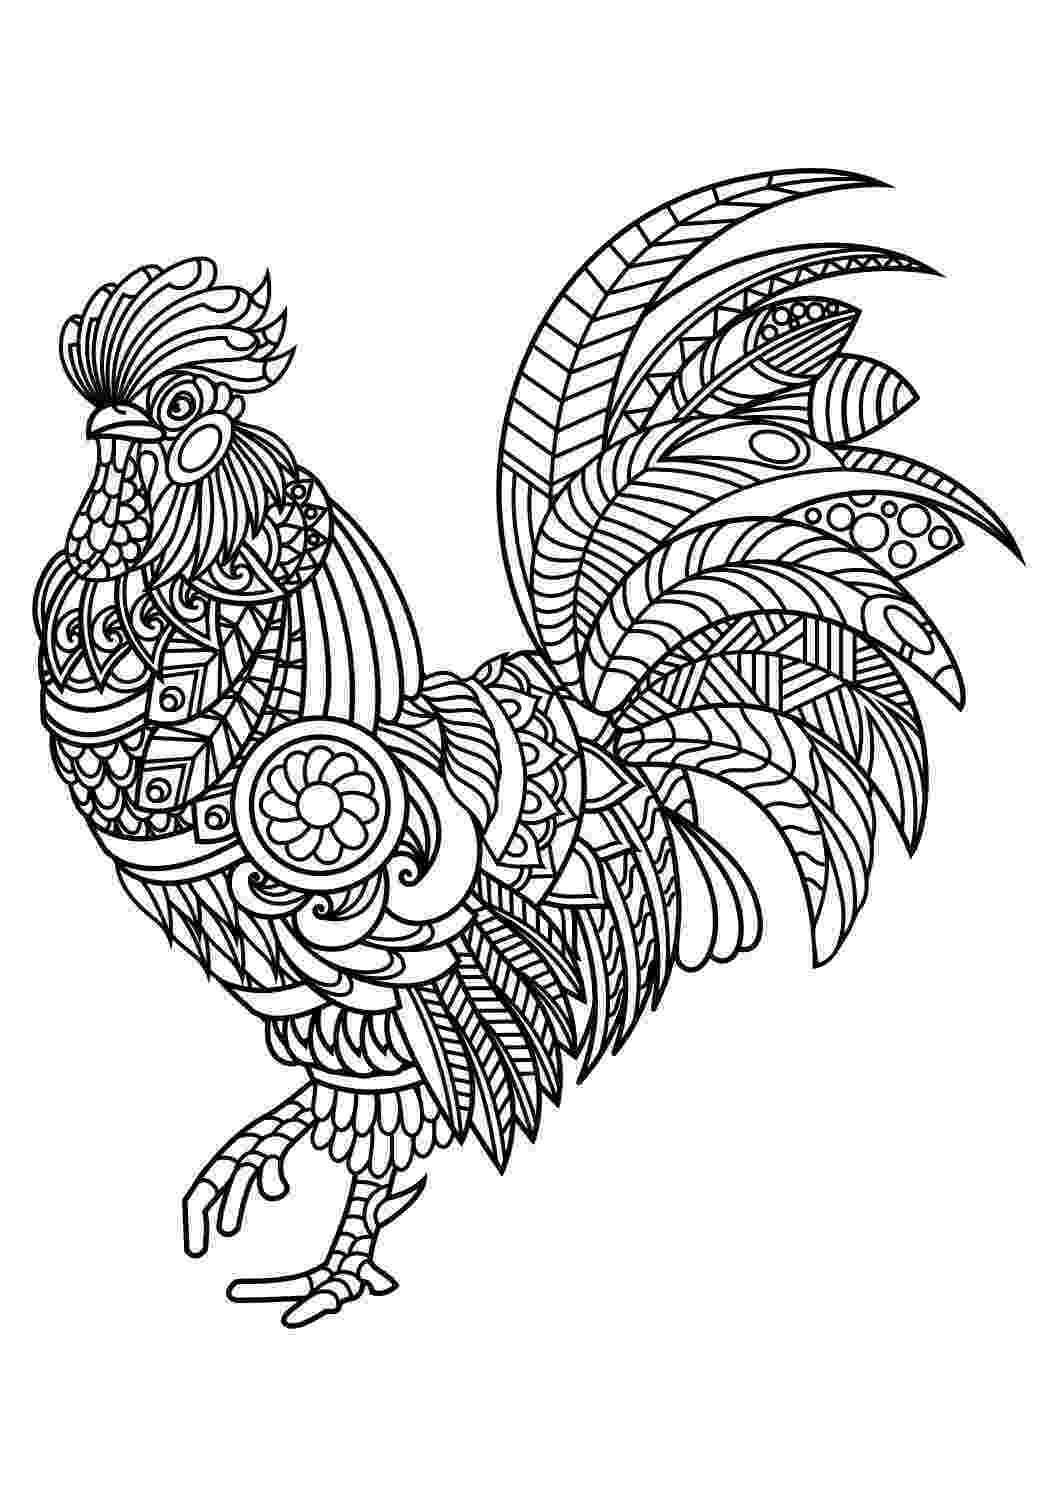 animal coloring book for adults animal coloring pages pdf bird coloring pages horse for coloring adults book animal